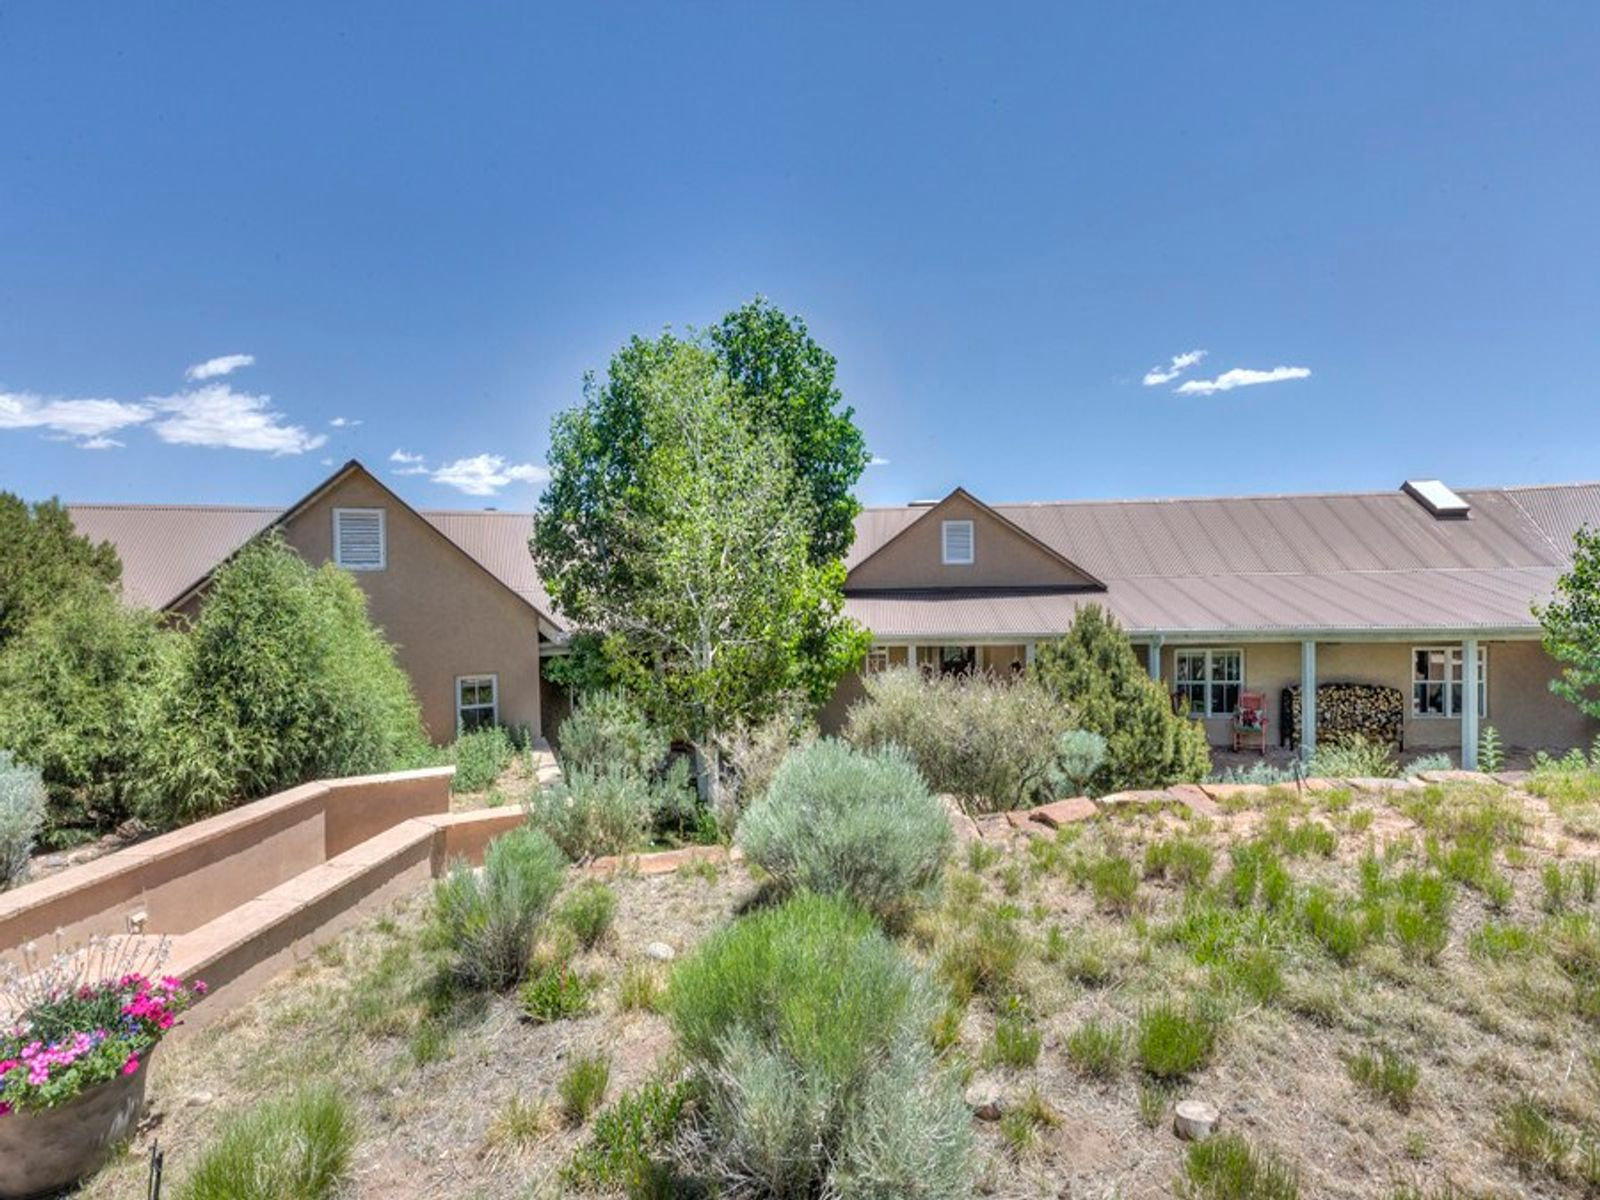 57 Goodnight Trail East, Santa Fe NM Single Family Home - Santa Fe Real Estate